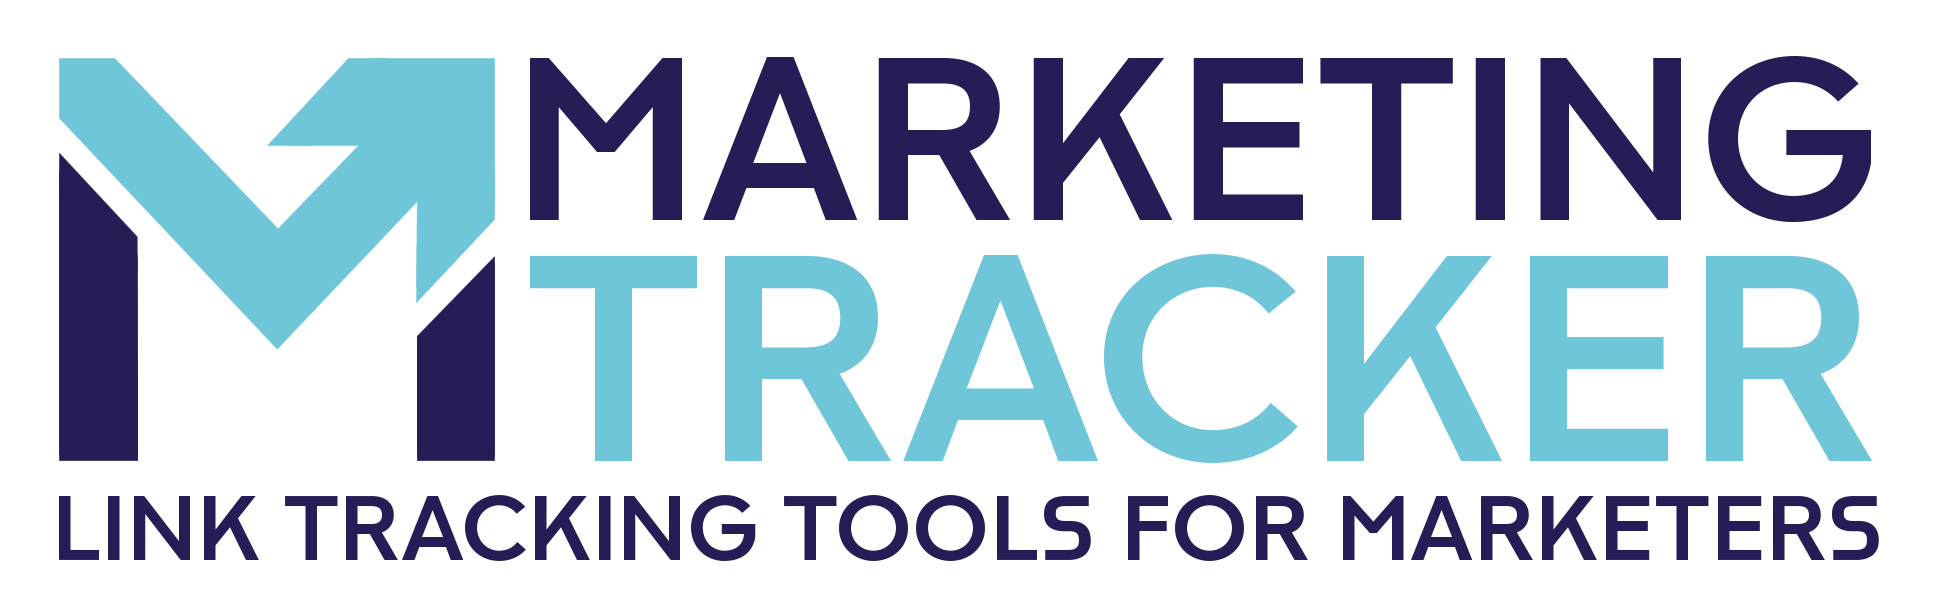 Marketing Tracker - Professional link tracking tools for marketers